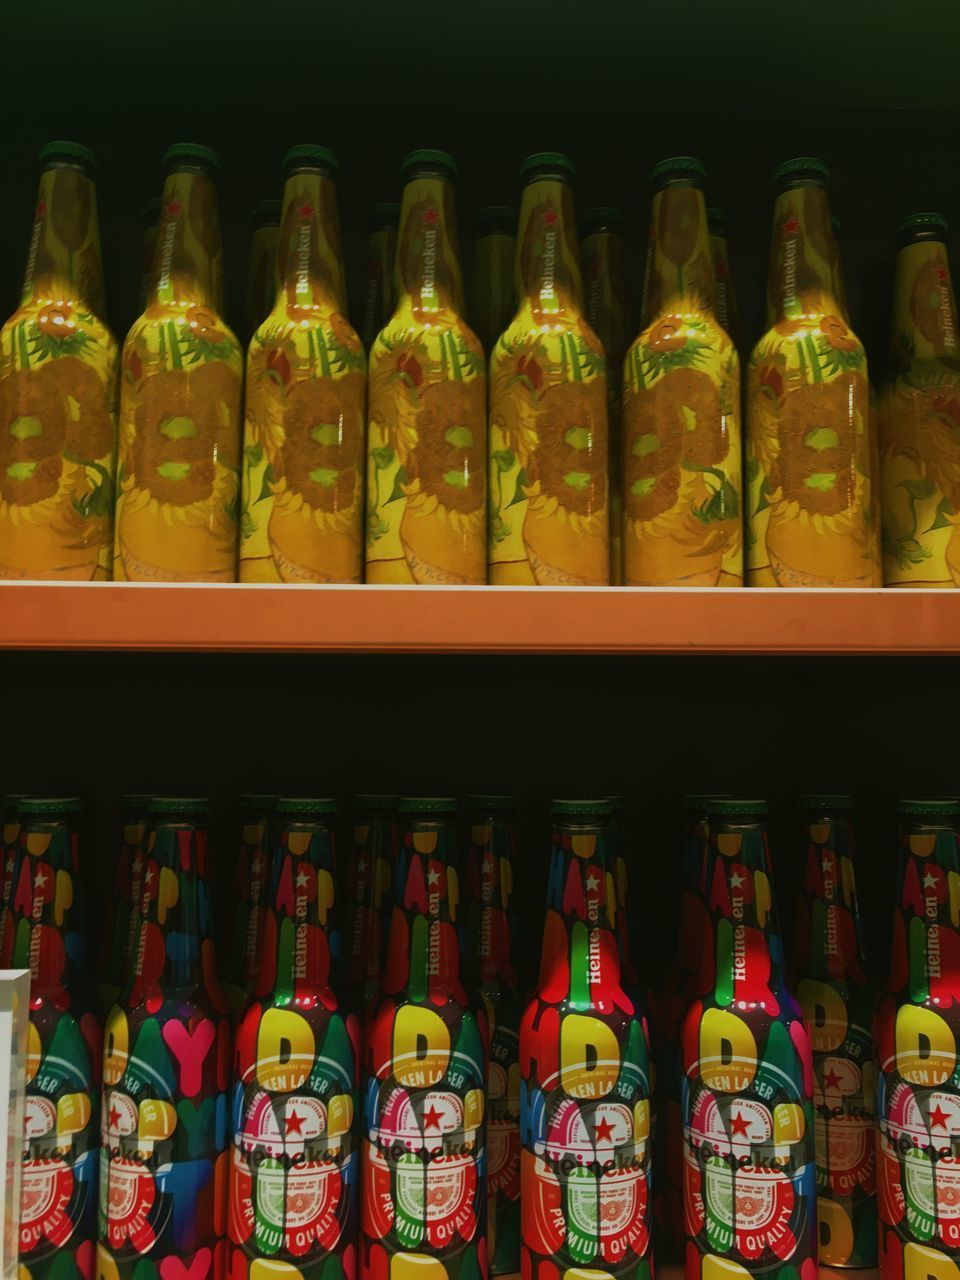 container, large group of objects, arrangement, choice, indoors, shelf, variation, in a row, no people, still life, abundance, retail, bottle, order, side by side, store, food and drink, multi colored, shelves, collection, retail display, sale